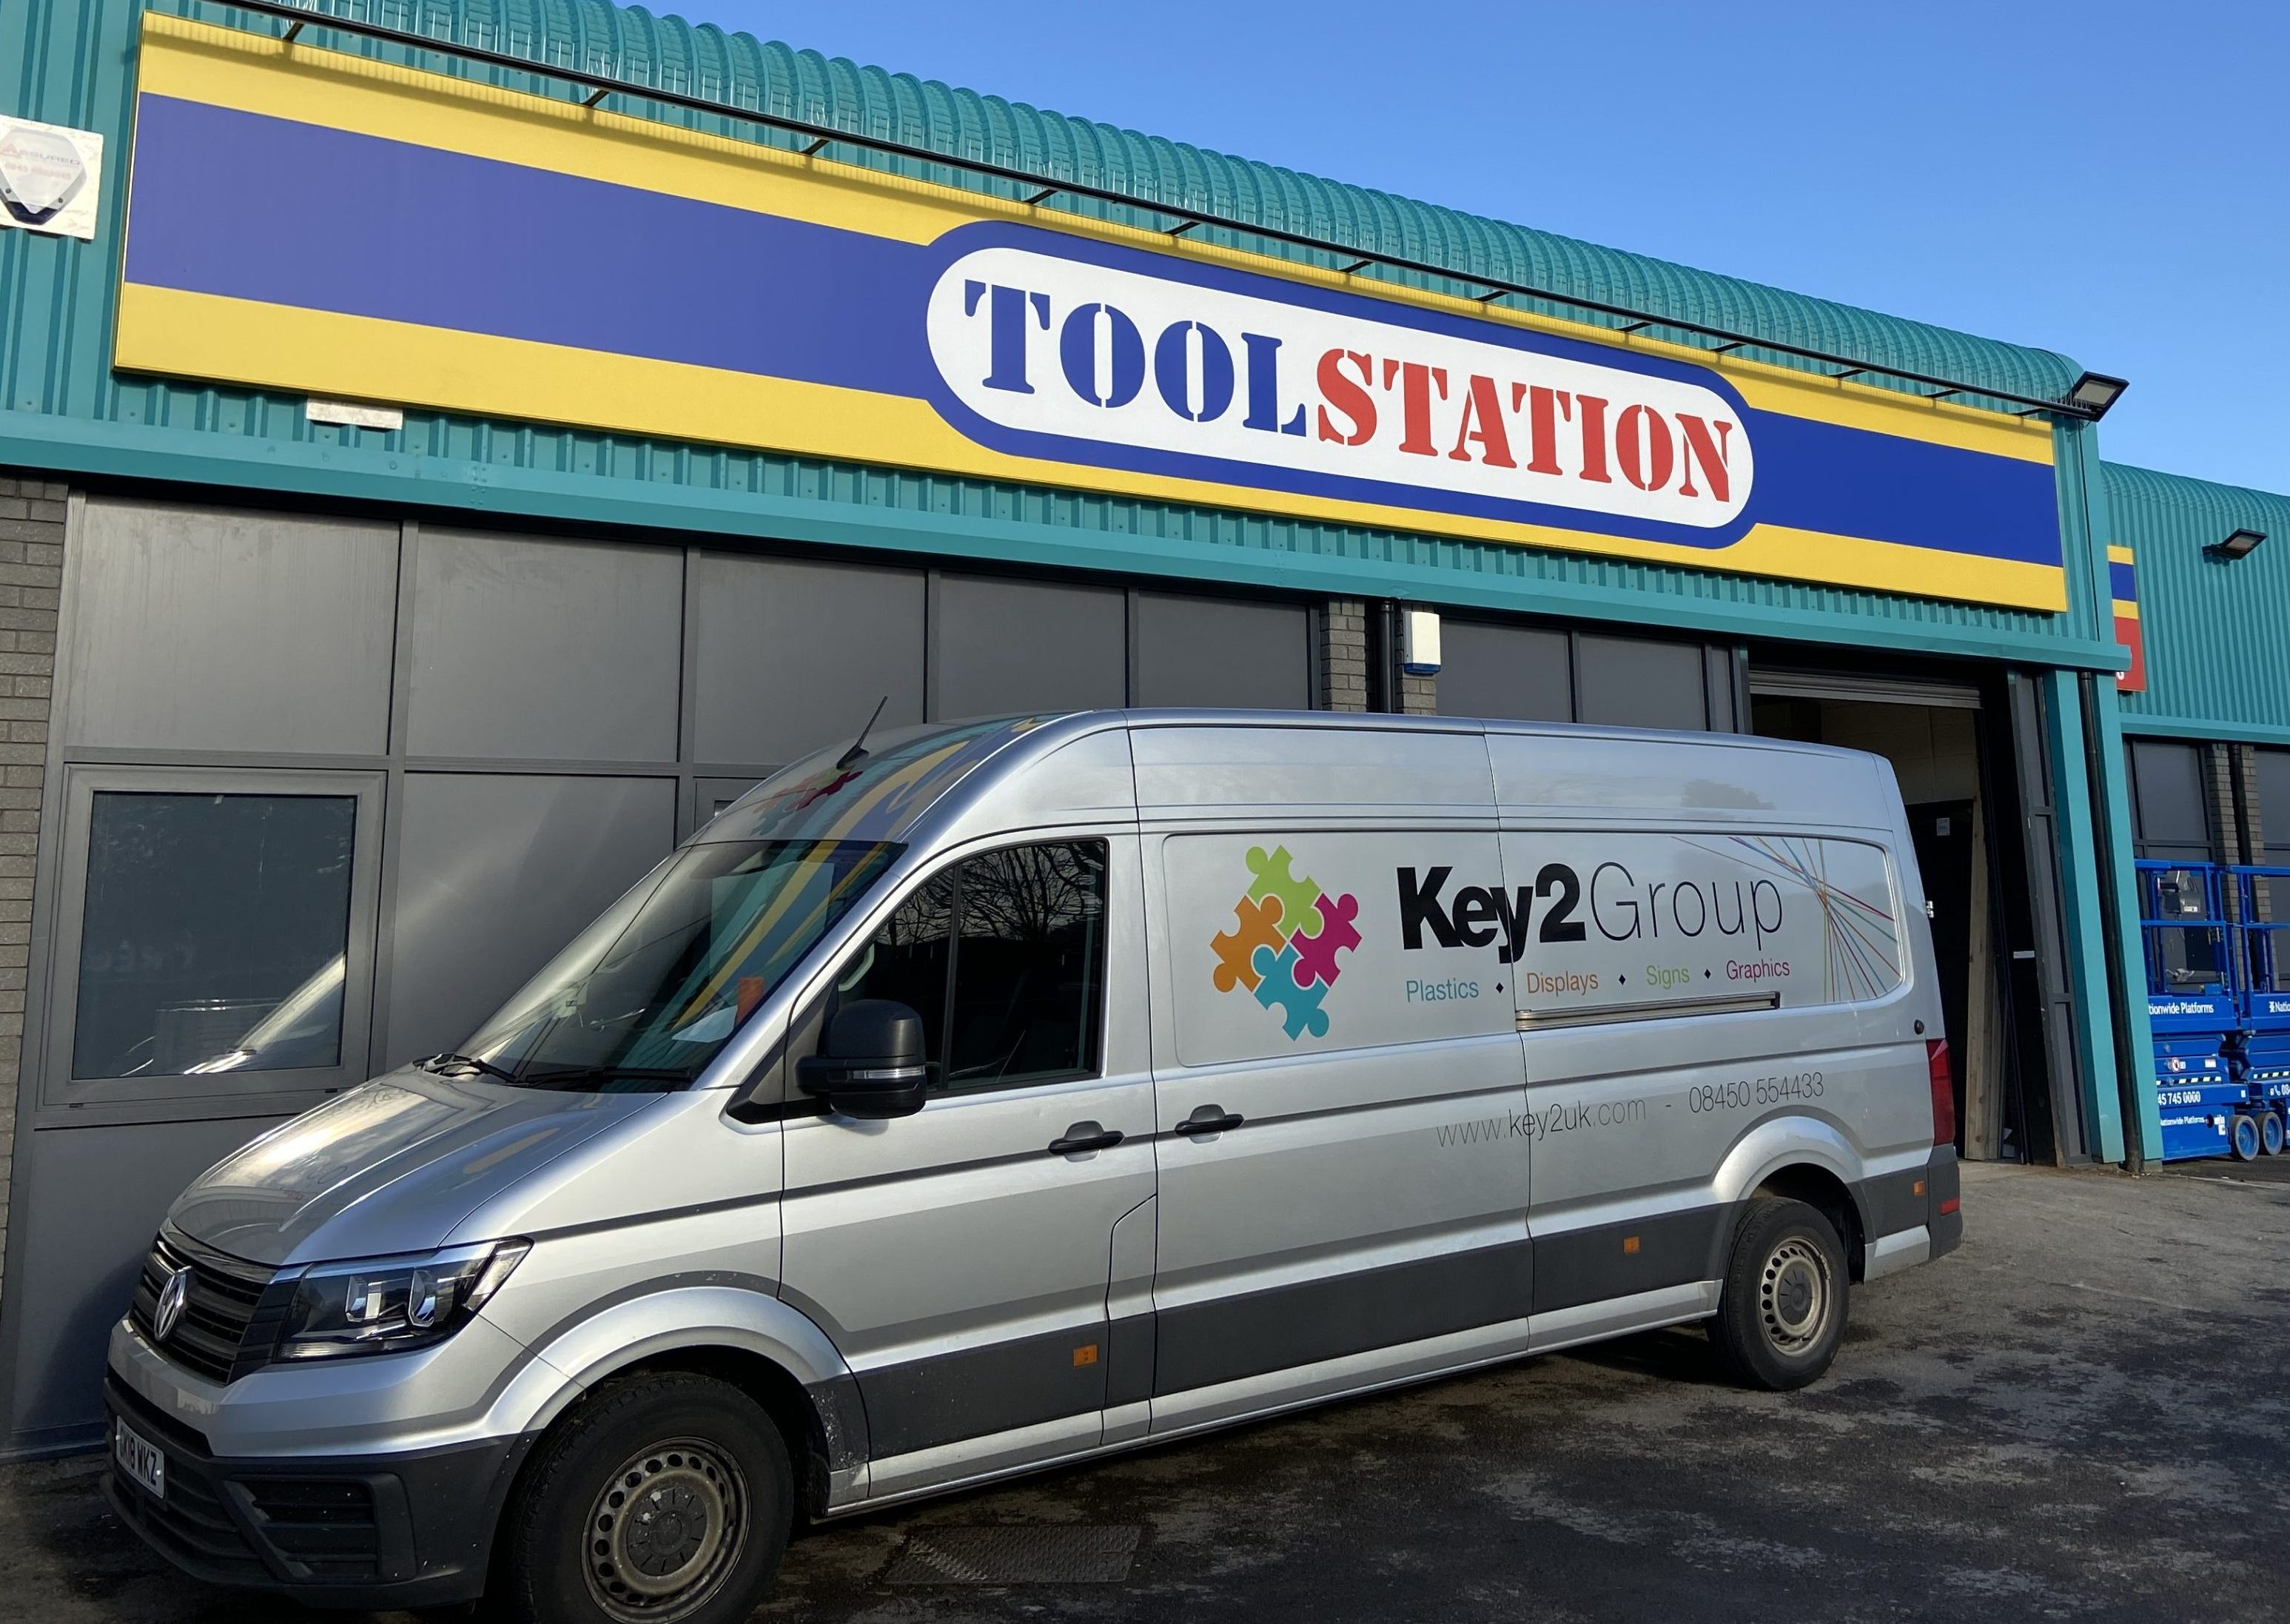 Tool station van sign